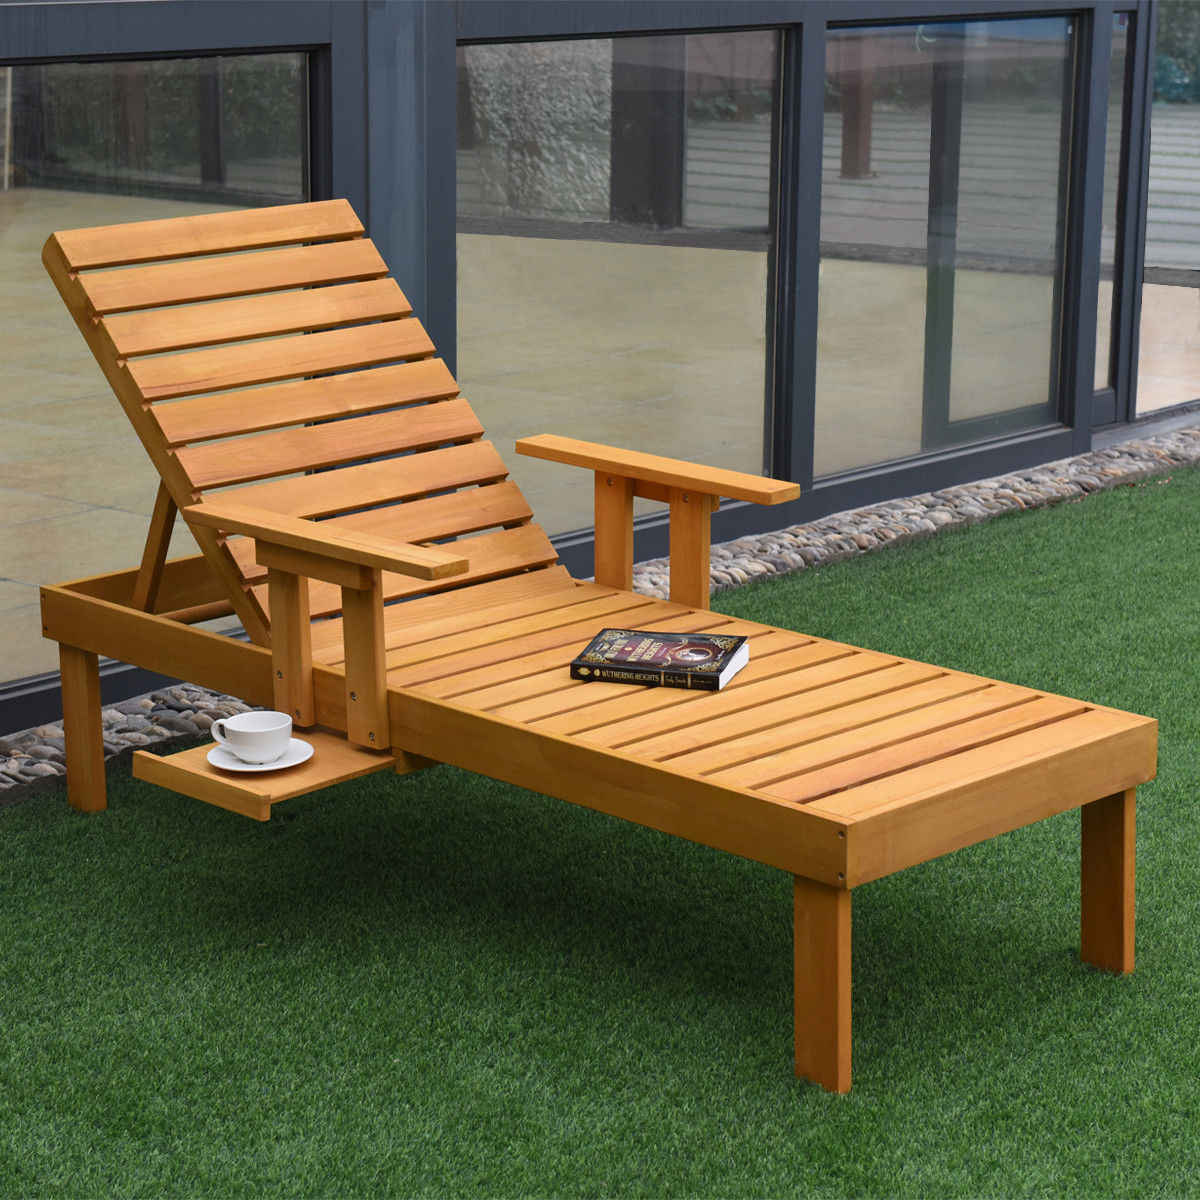 Giantex Patio Chaise Sun Lounger Outdoor Furniture Garden Side Tray Deck Chair Modern Wood Beach Lounge & Detail Feedback Questions about Giantex Patio Chaise Sun Lounger ...